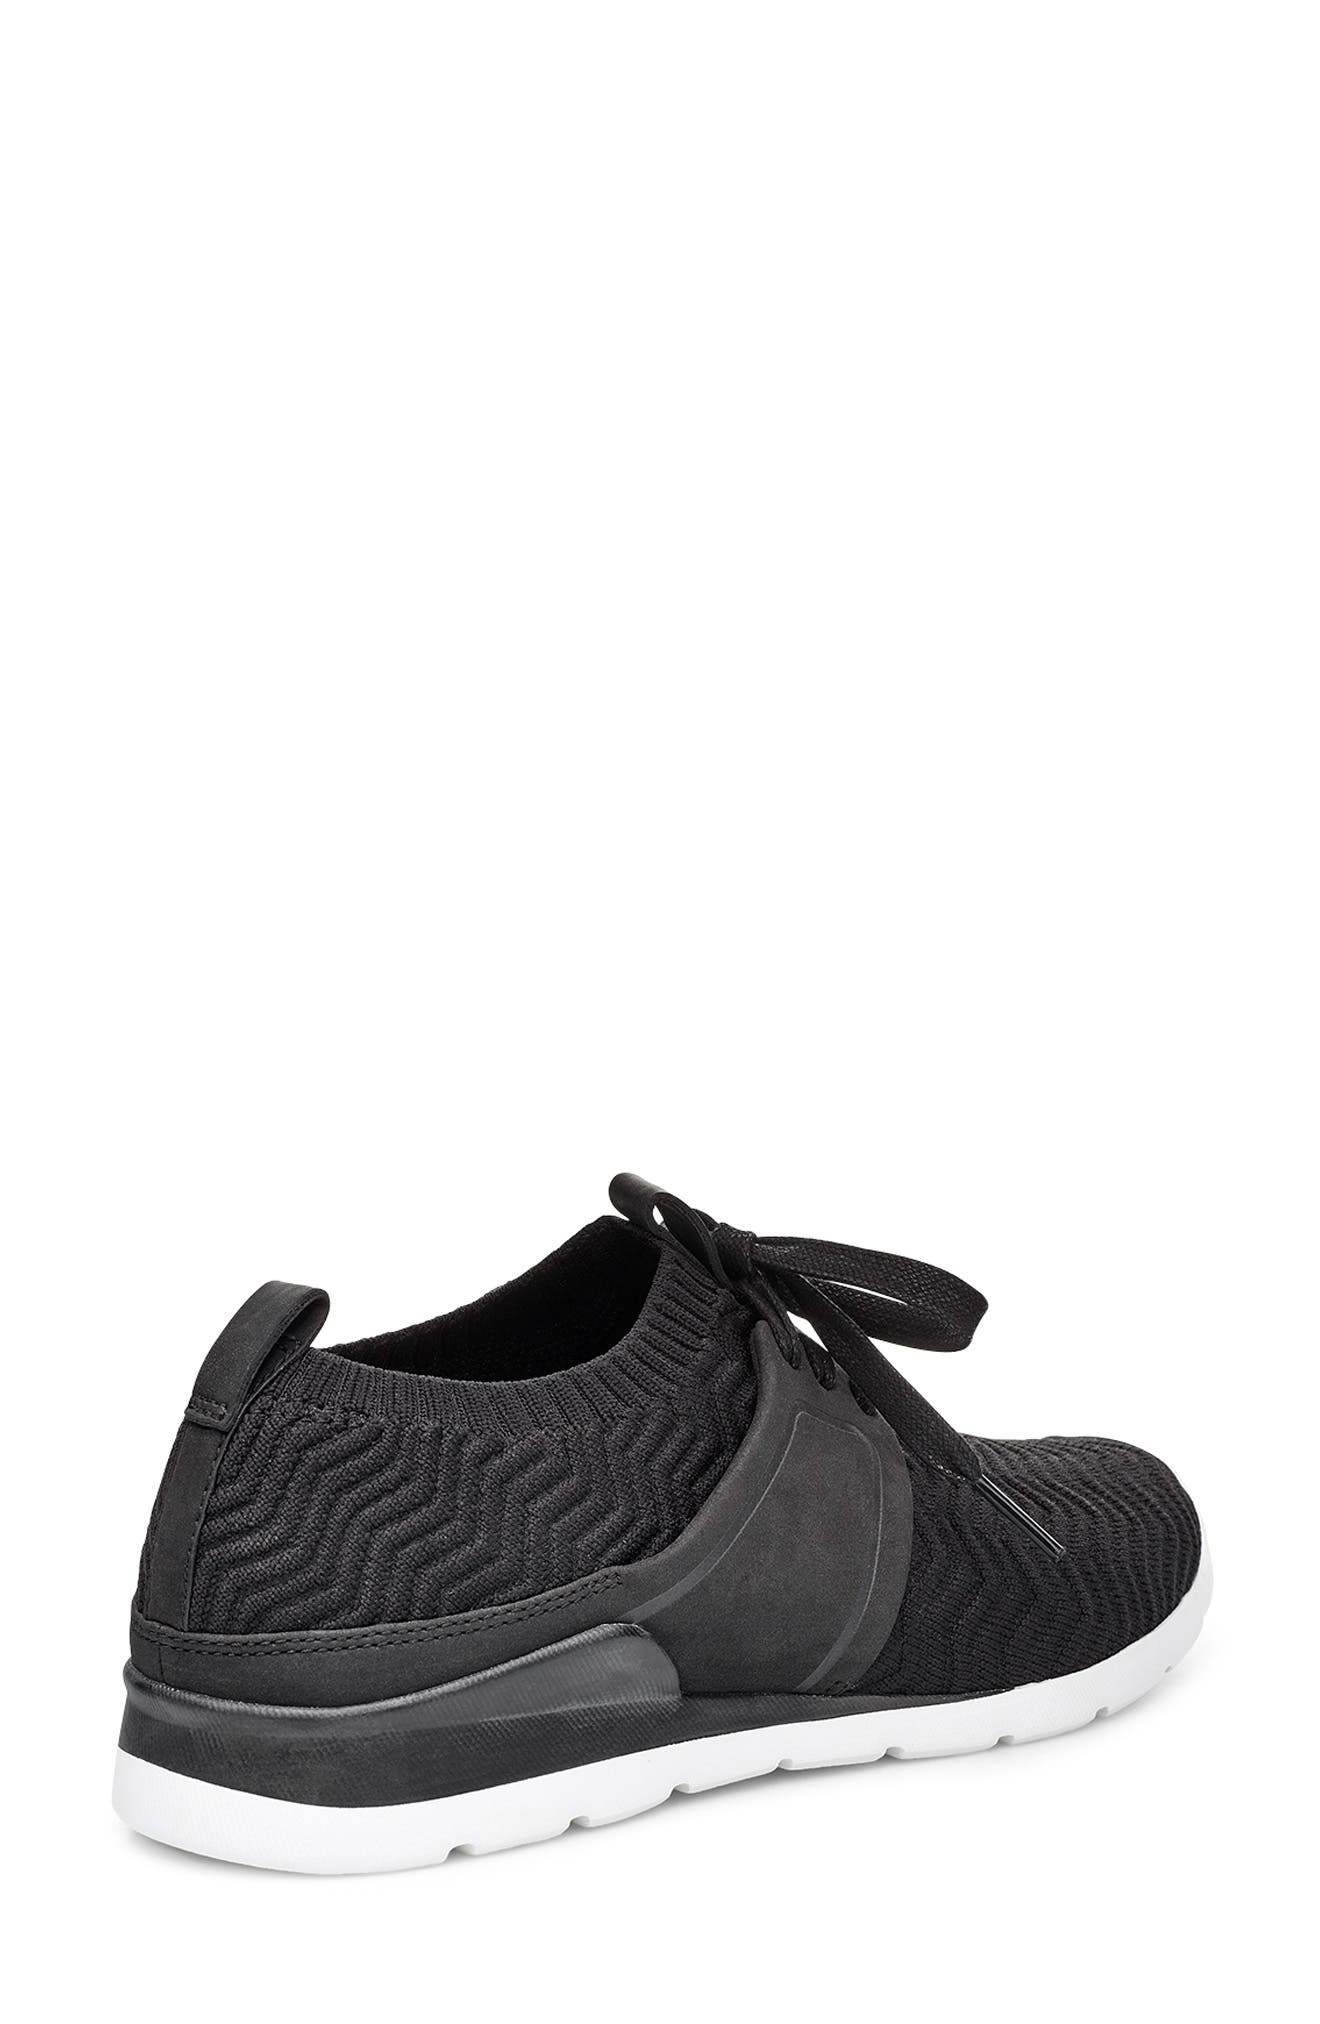 UGG<SUP>®</SUP>, Willows Sneaker, Alternate thumbnail 2, color, BLACK